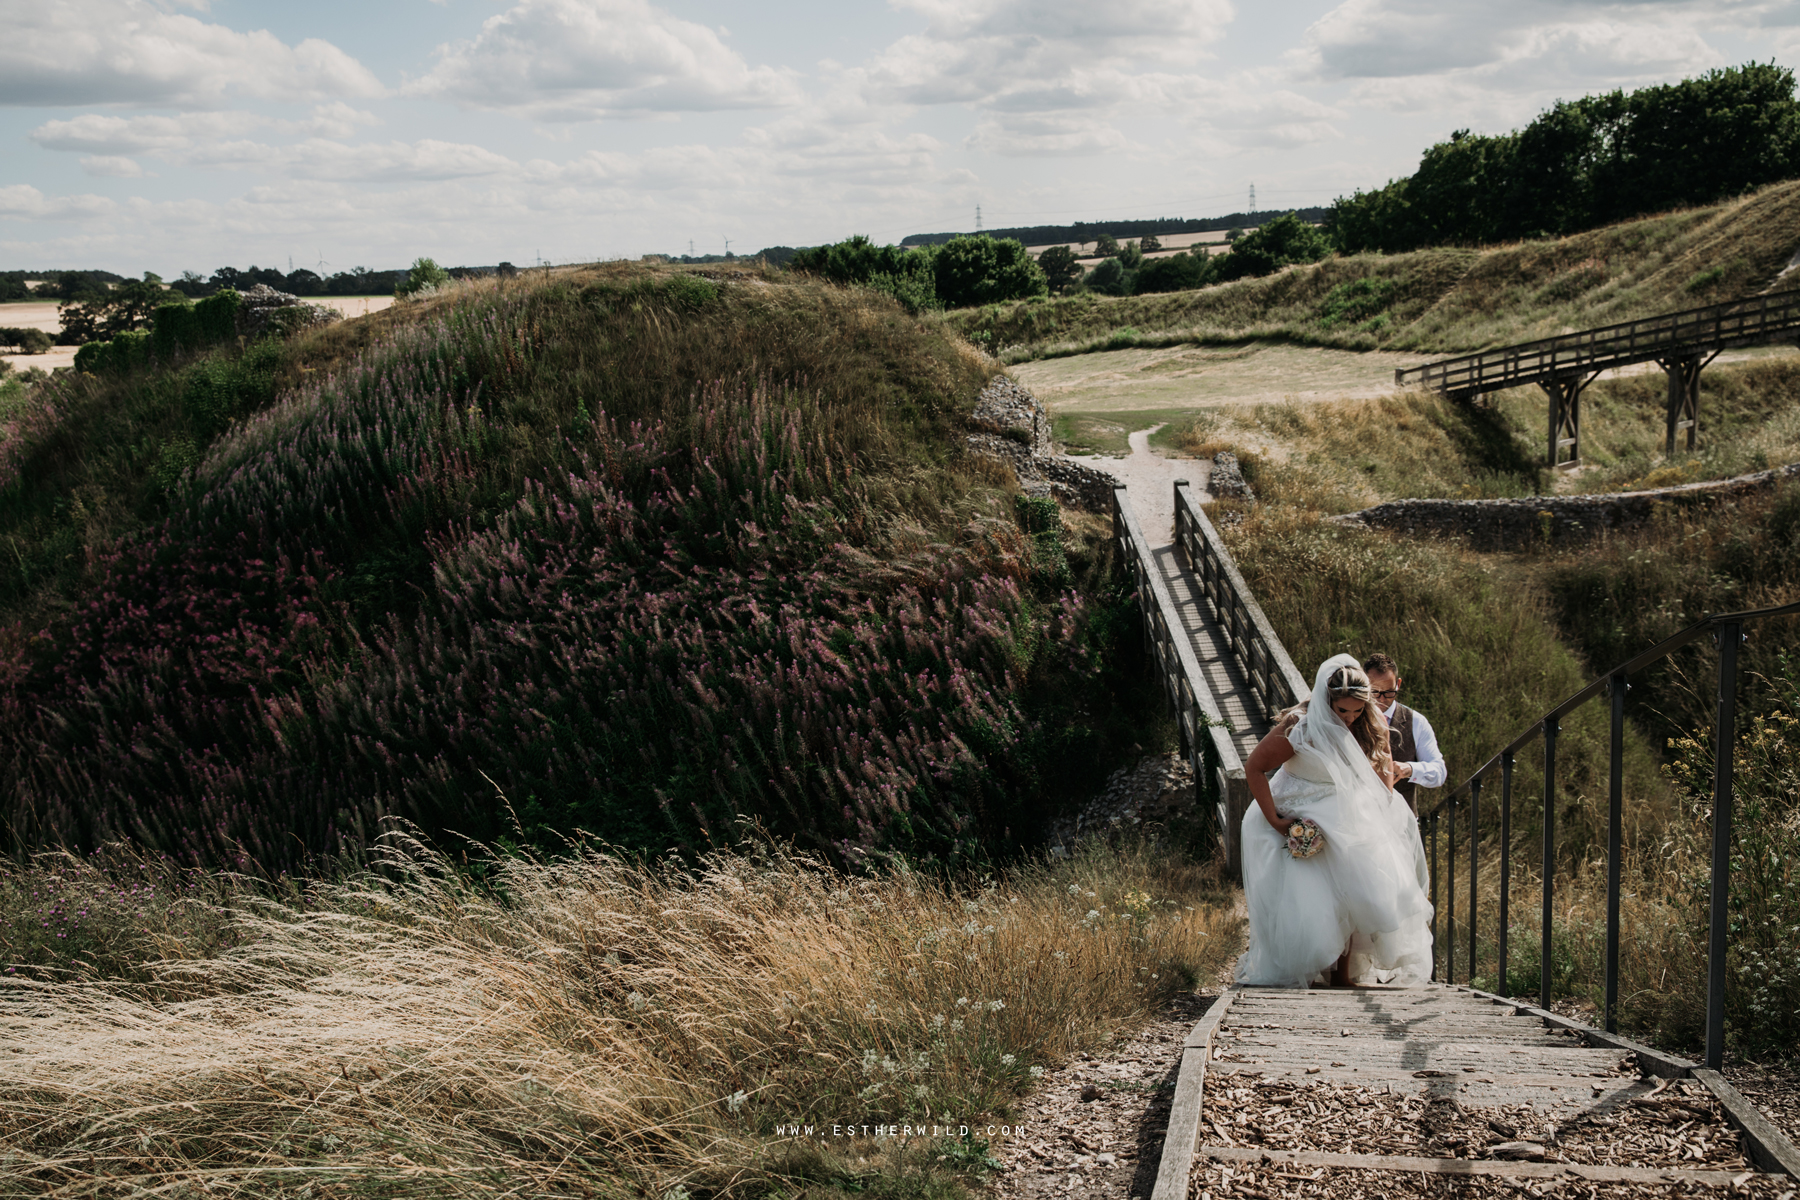 Swaffham_Wedding_Castle_Acre_Norfolk_Esther_Wild_Photographer_Wedding_Photography_3R8A1486.jpg